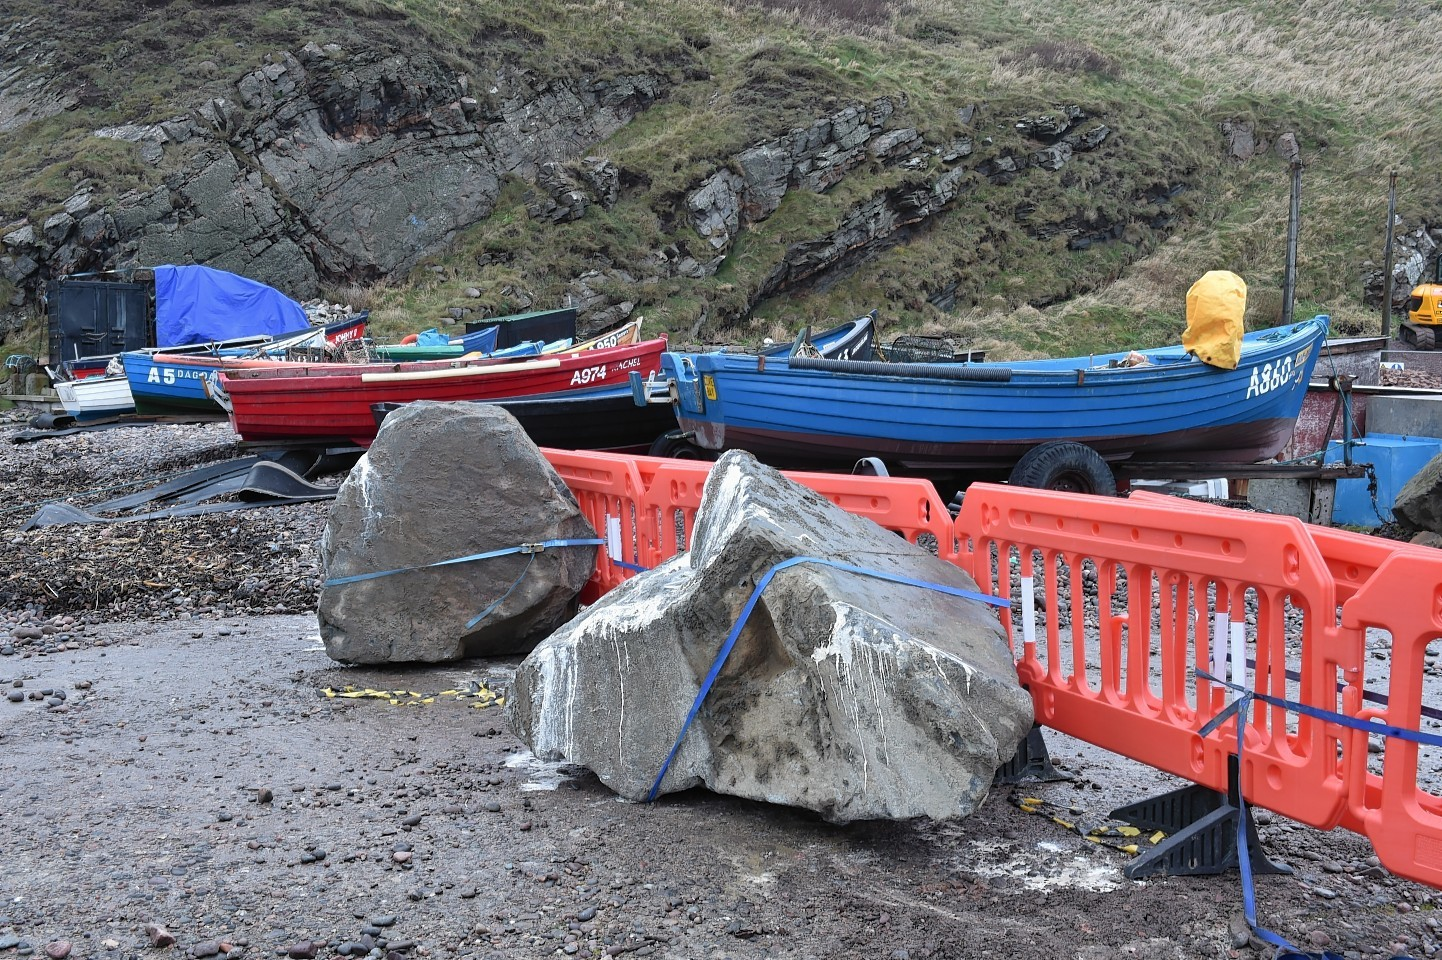 Large boulders and smaller stones arrive at Cove  Harbour to prevent access.